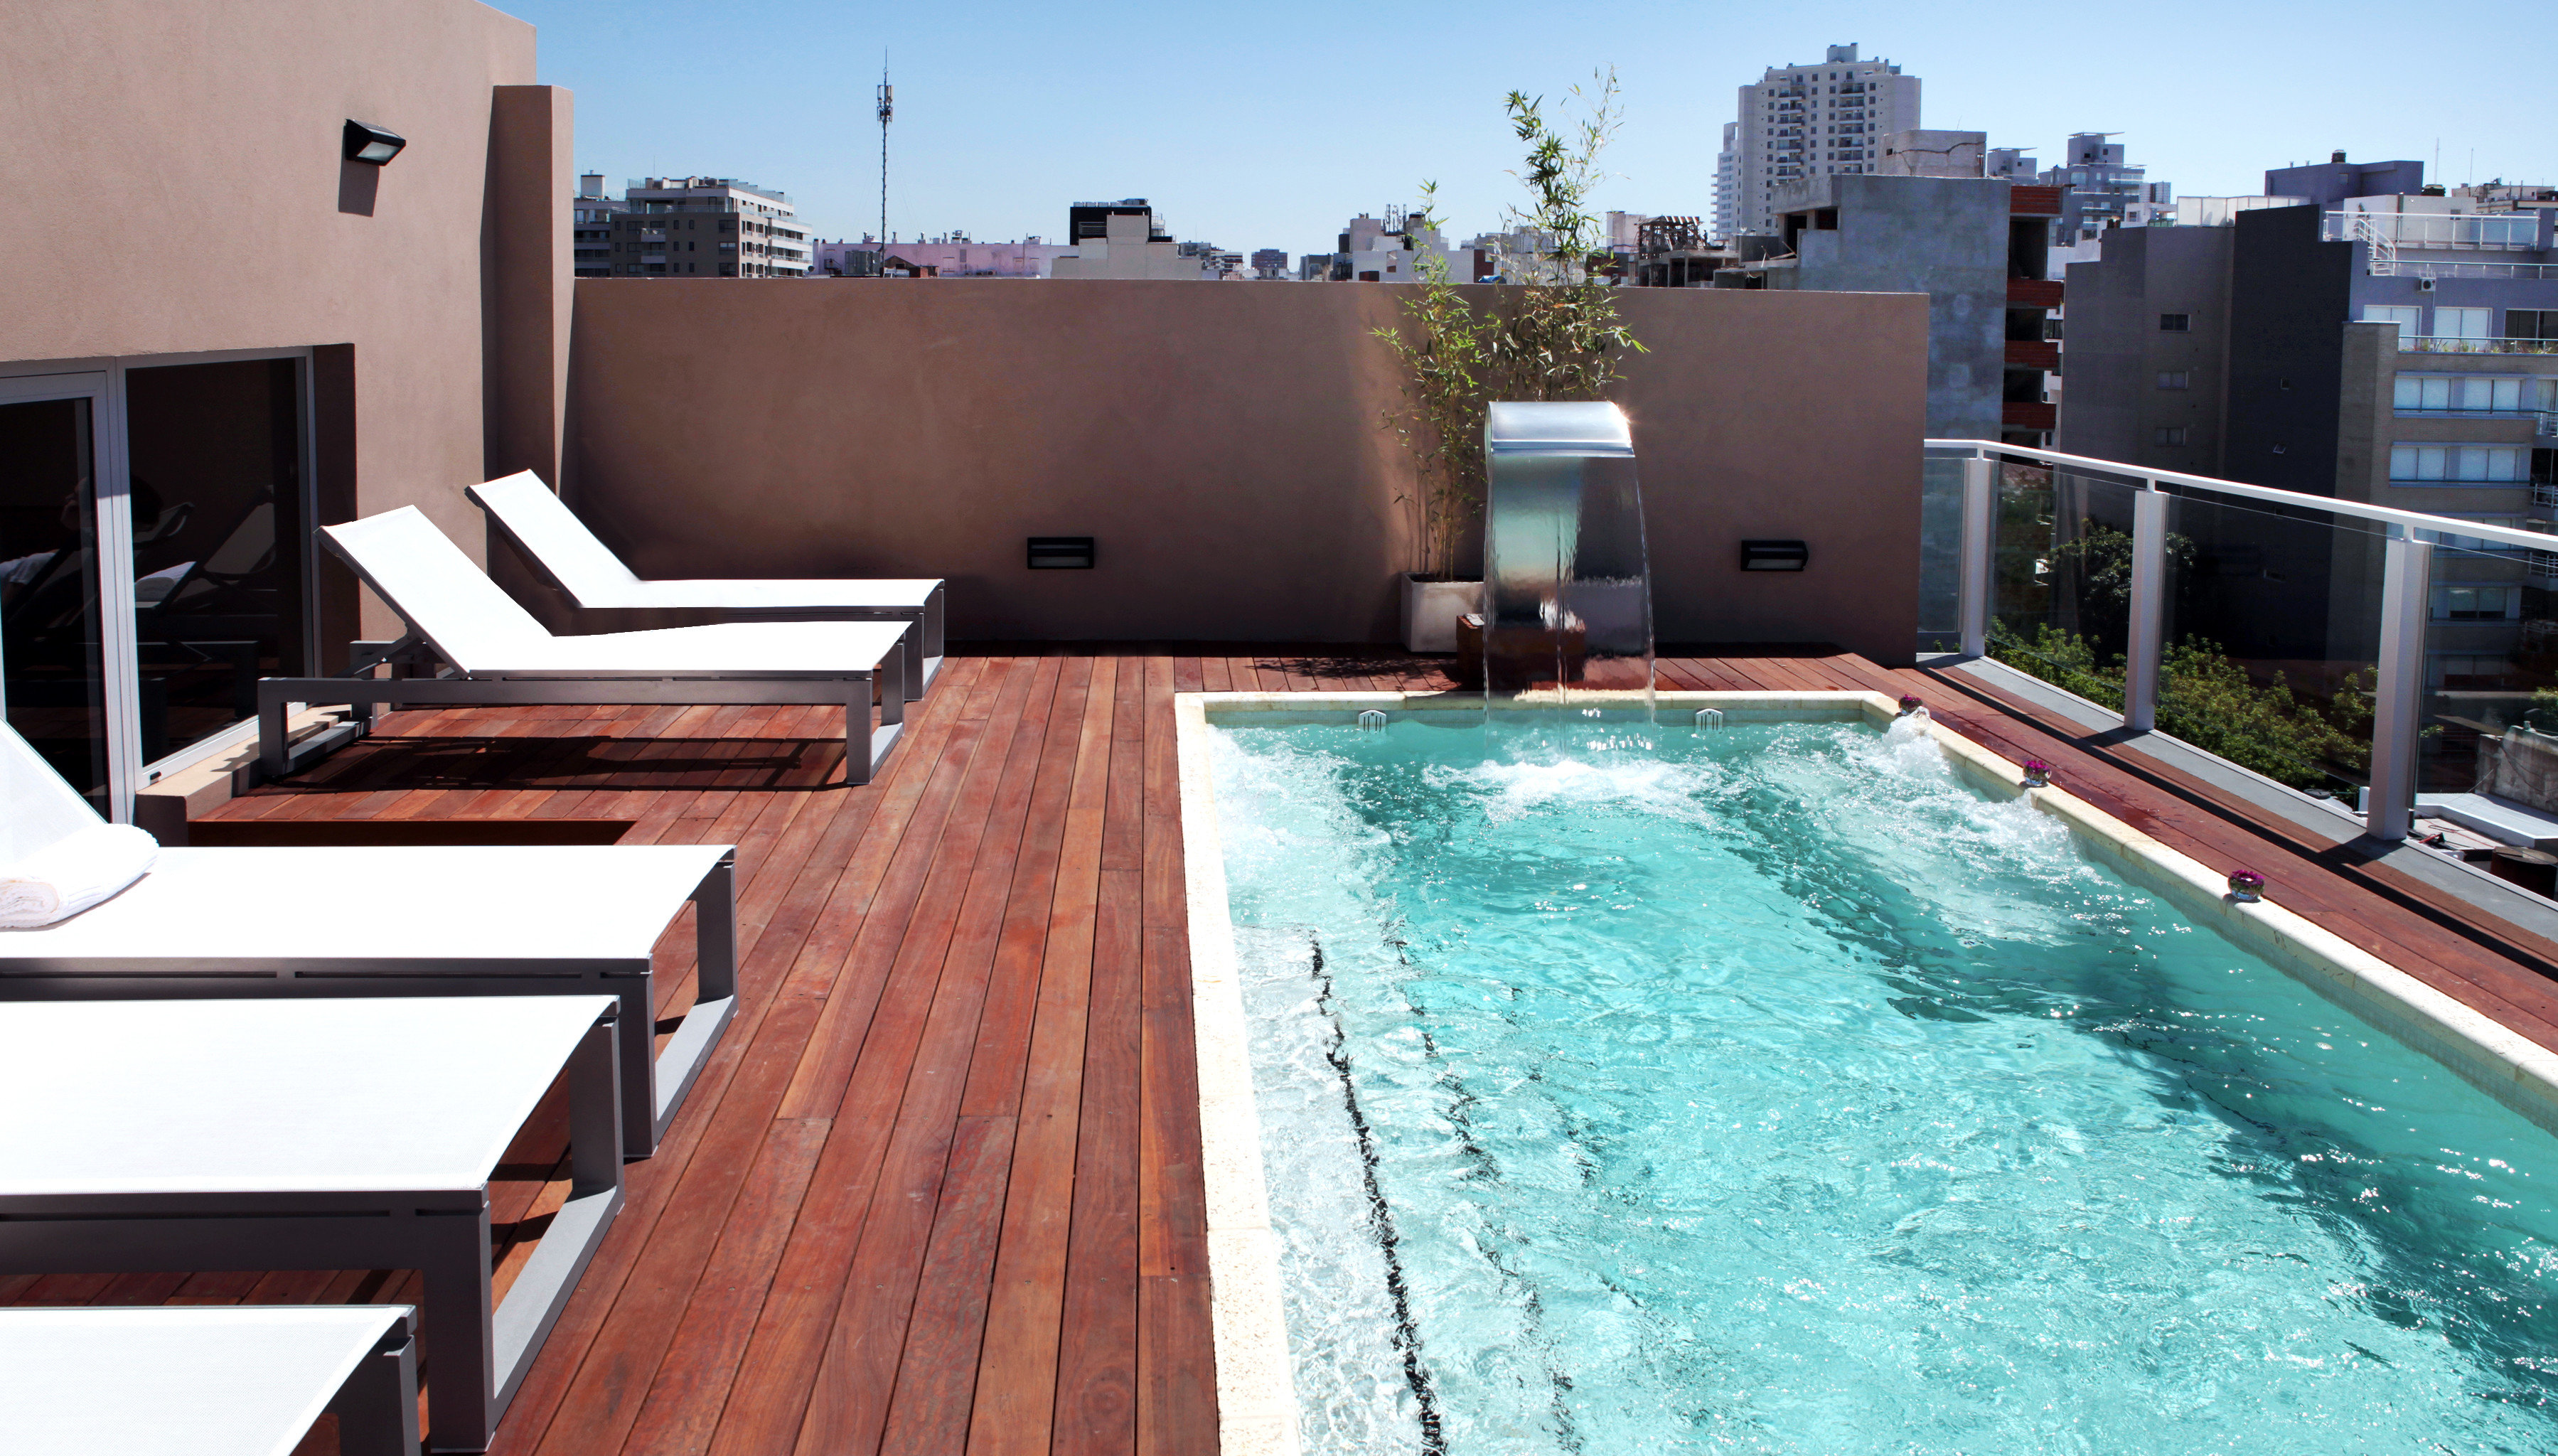 Boutique City Hip Pool Rooftop swimming pool property building house Villa backyard home condominium outdoor structure cottage Resort